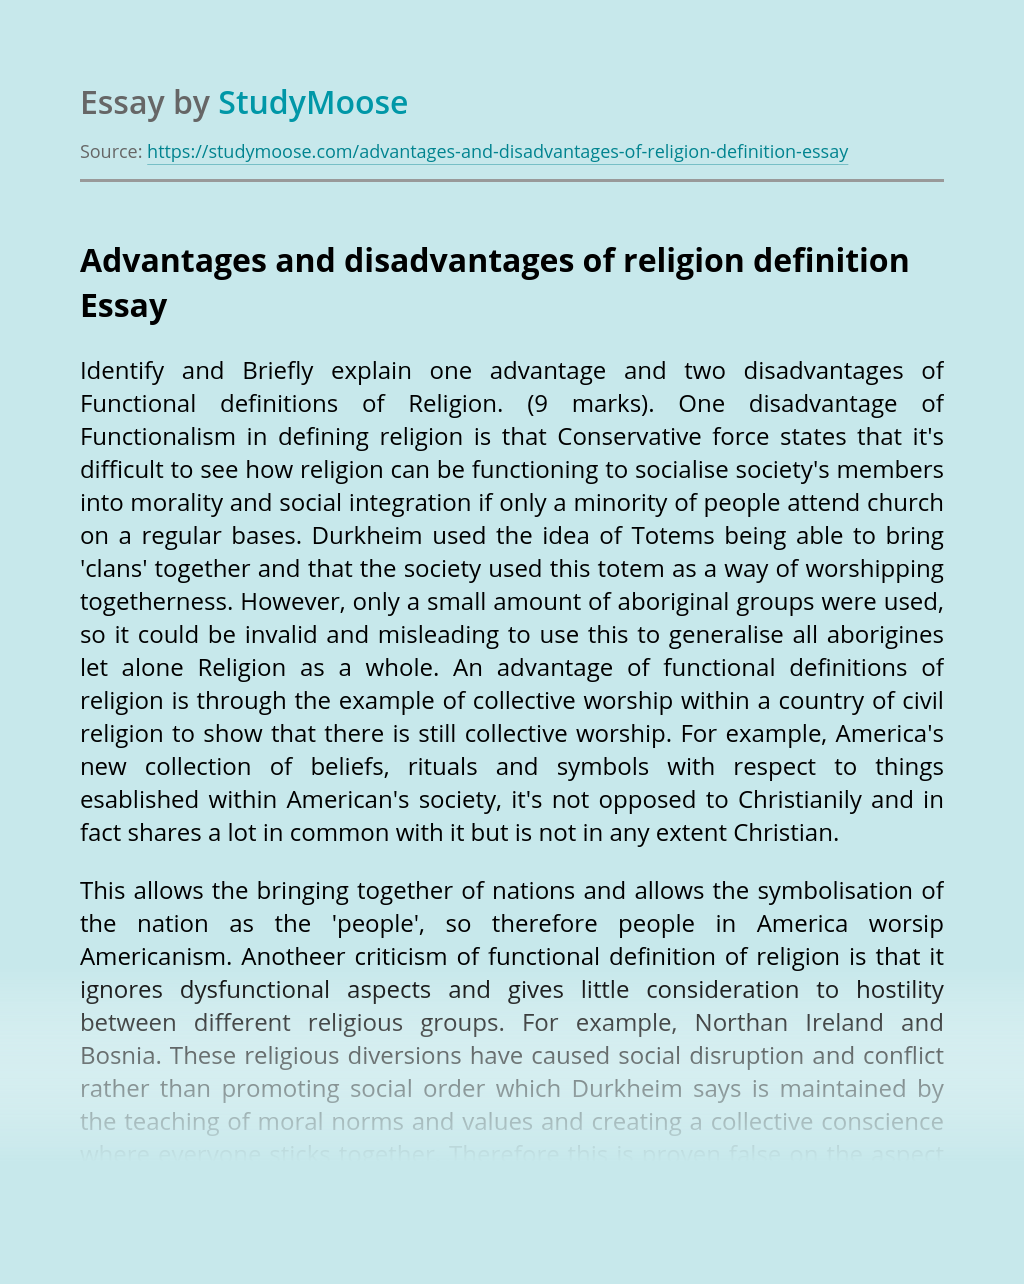 Advantages and disadvantages of religion definition